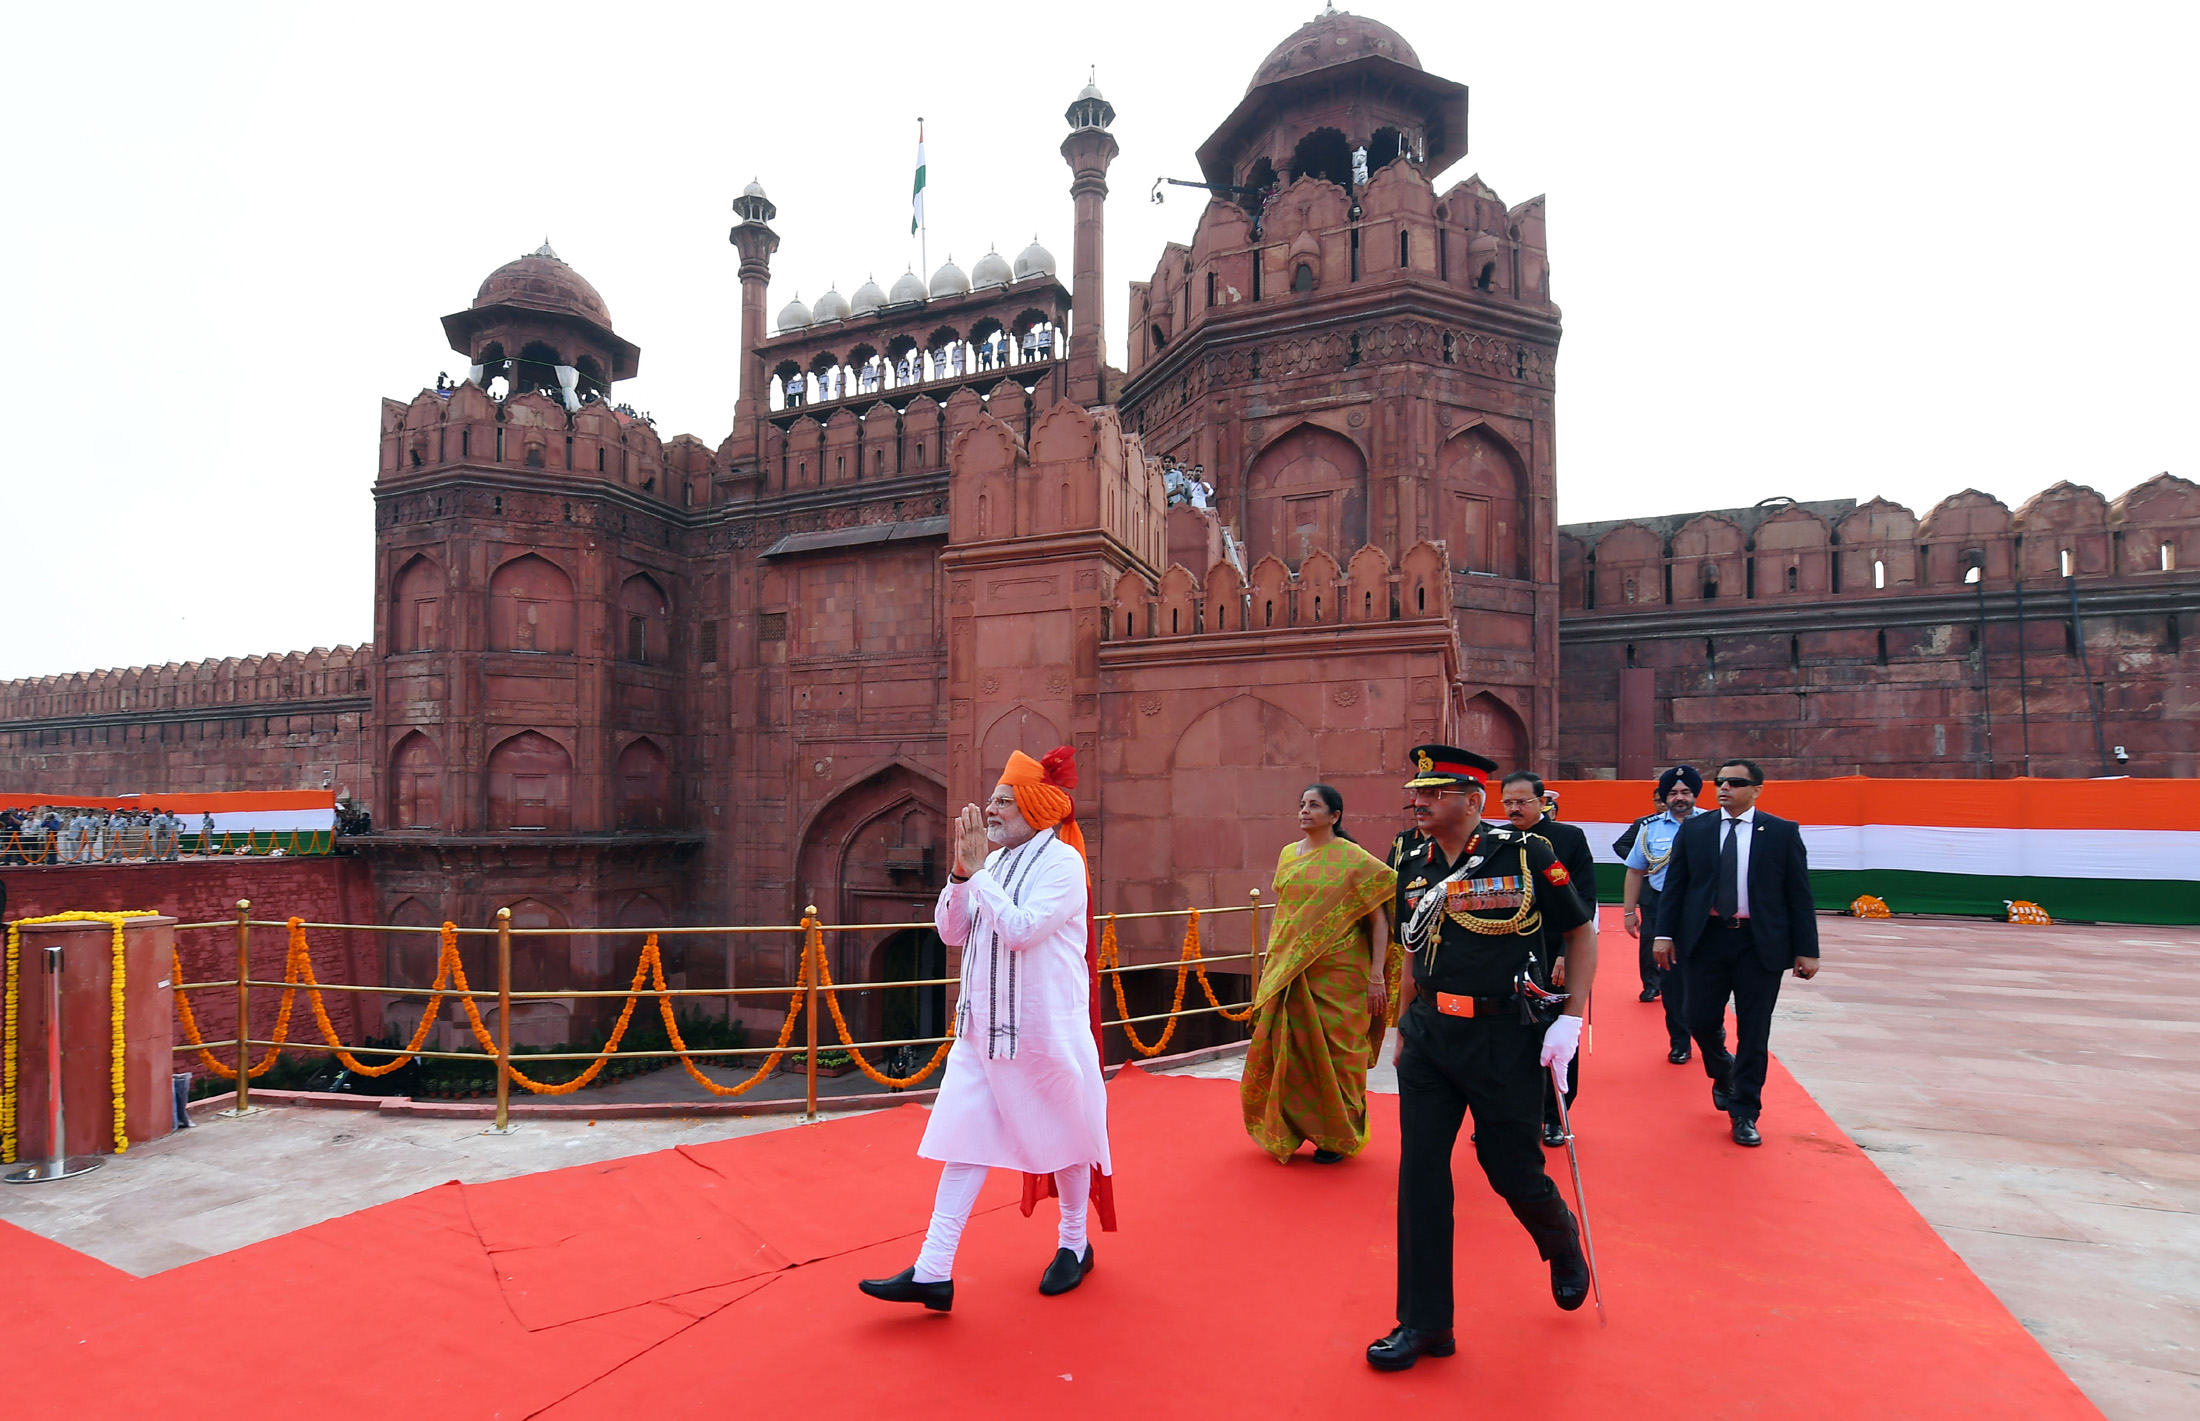 The Prime Minister, Shri Narendra Modi walking towards the dais to address the Nation at the Red Fort, on the occasion of 72nd Independence Day, in Delhi on August 15, 2018. The Union Minister for Defence, Smt. Nirmala Sitharaman and the Minister of State for Defence, Dr. Subhash Ramrao Bhamre are also seen.